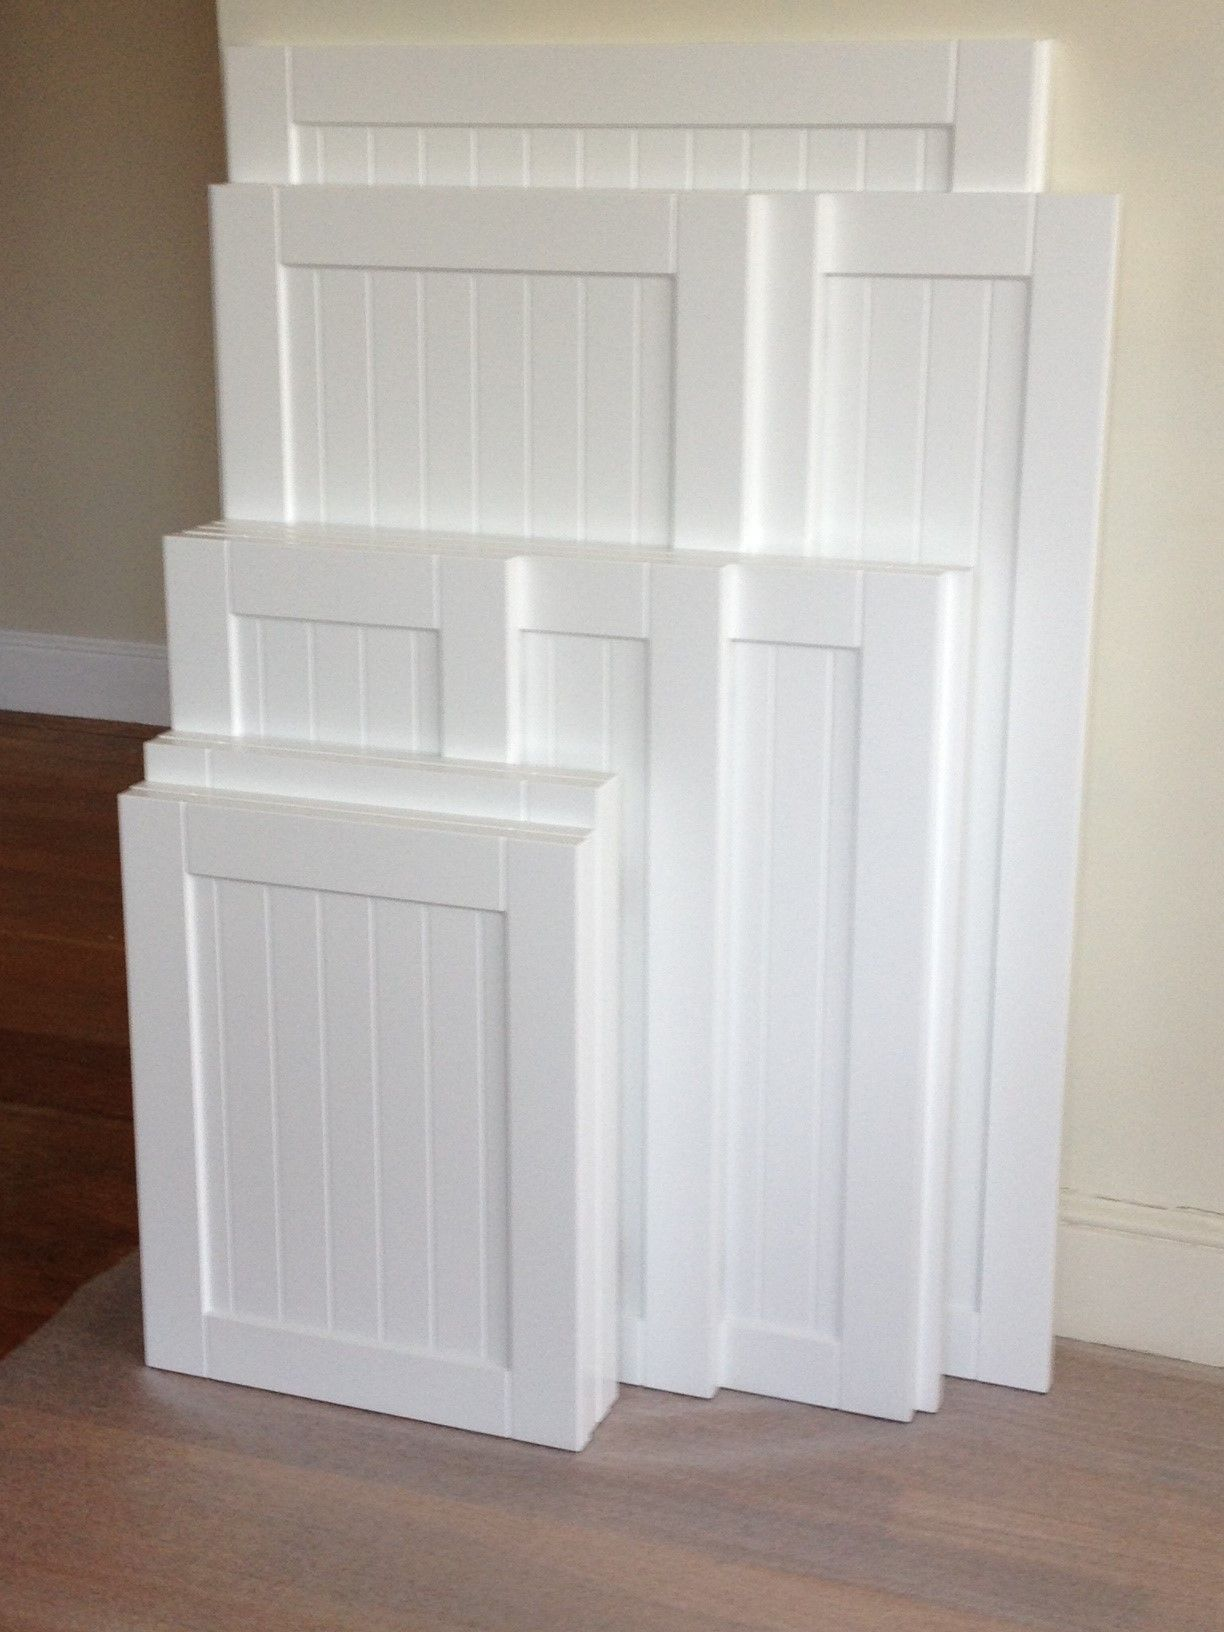 shaker style cabinet doors. Simple Style Shaker Style Cabinet With Beadboard Accent And Style Cabinet Doors S